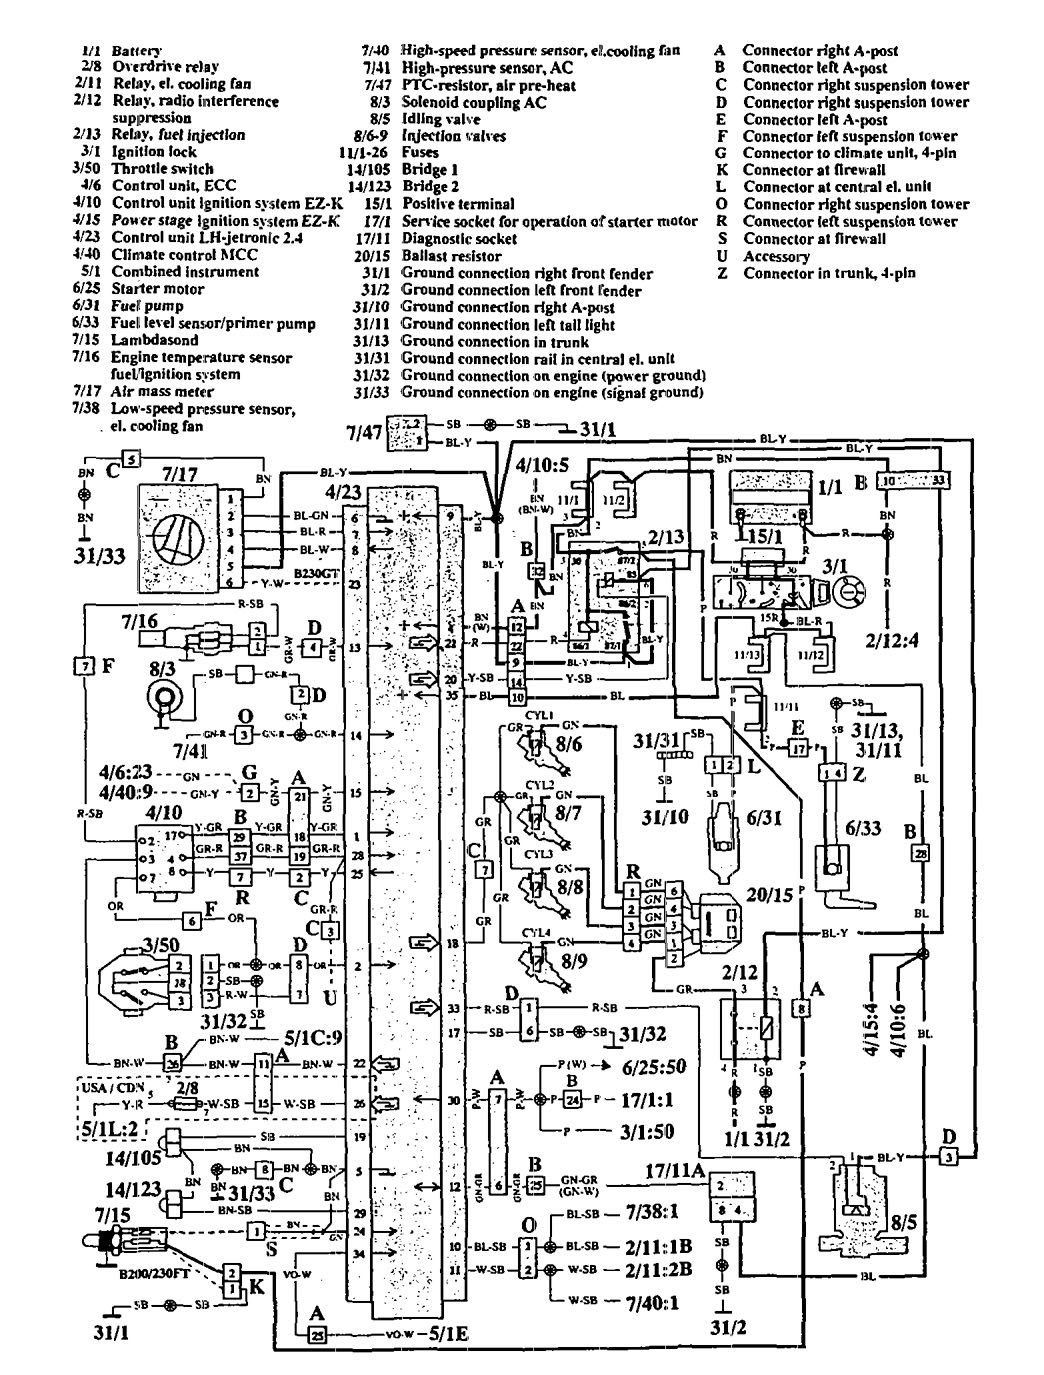 1995 Volvo 940 Engine Diagram Wiring Schematic Online 2000 Cadillac Eldorado Se Data Parts Fuel Injecter